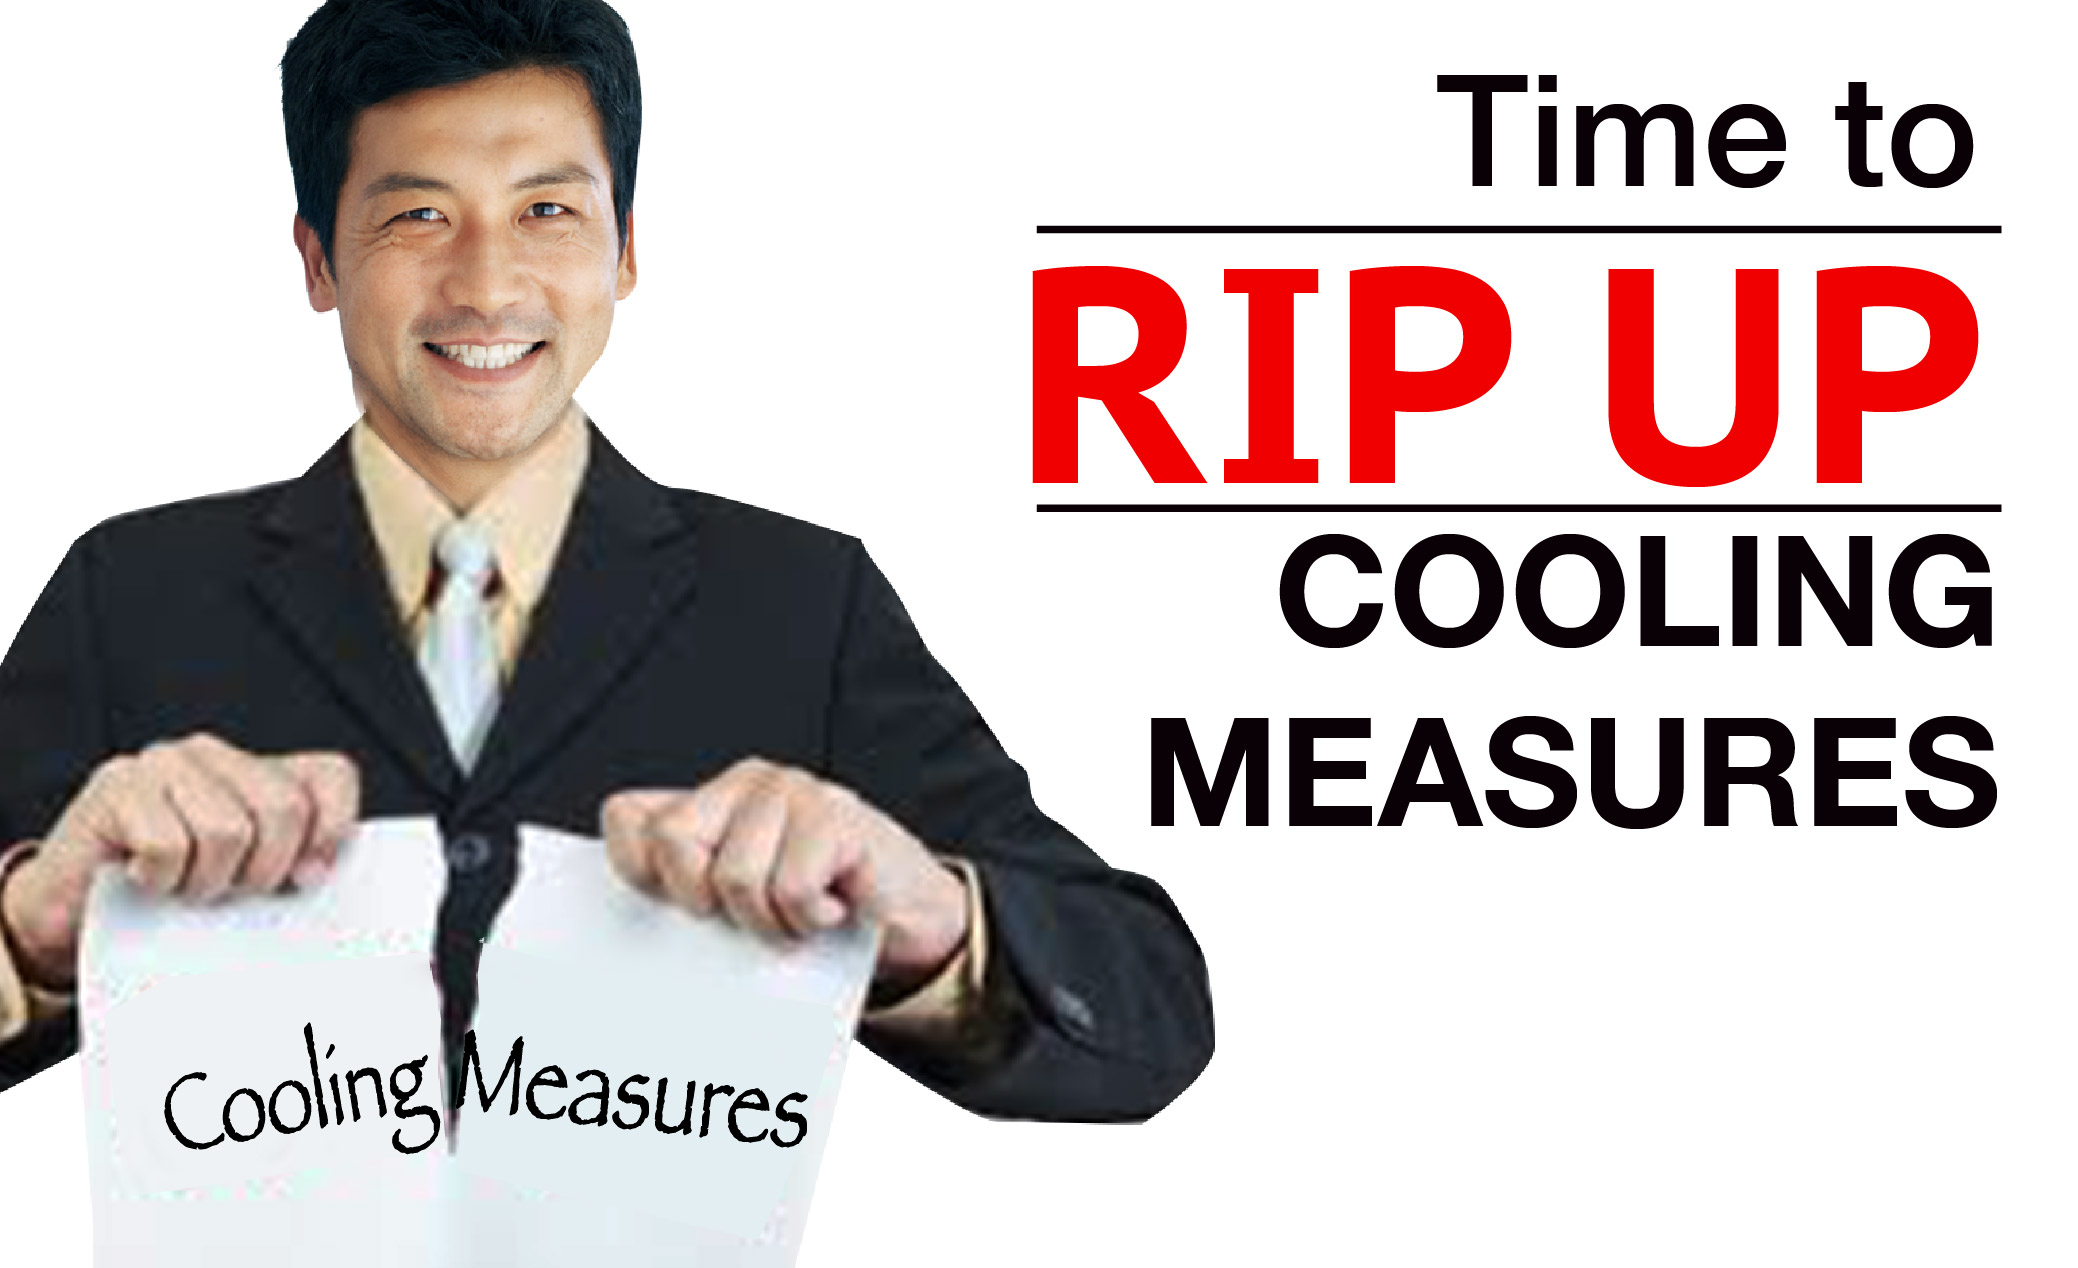 http://www.srx.com.sg/singapore-property-news/6202/are-cooling-measures-obsolete